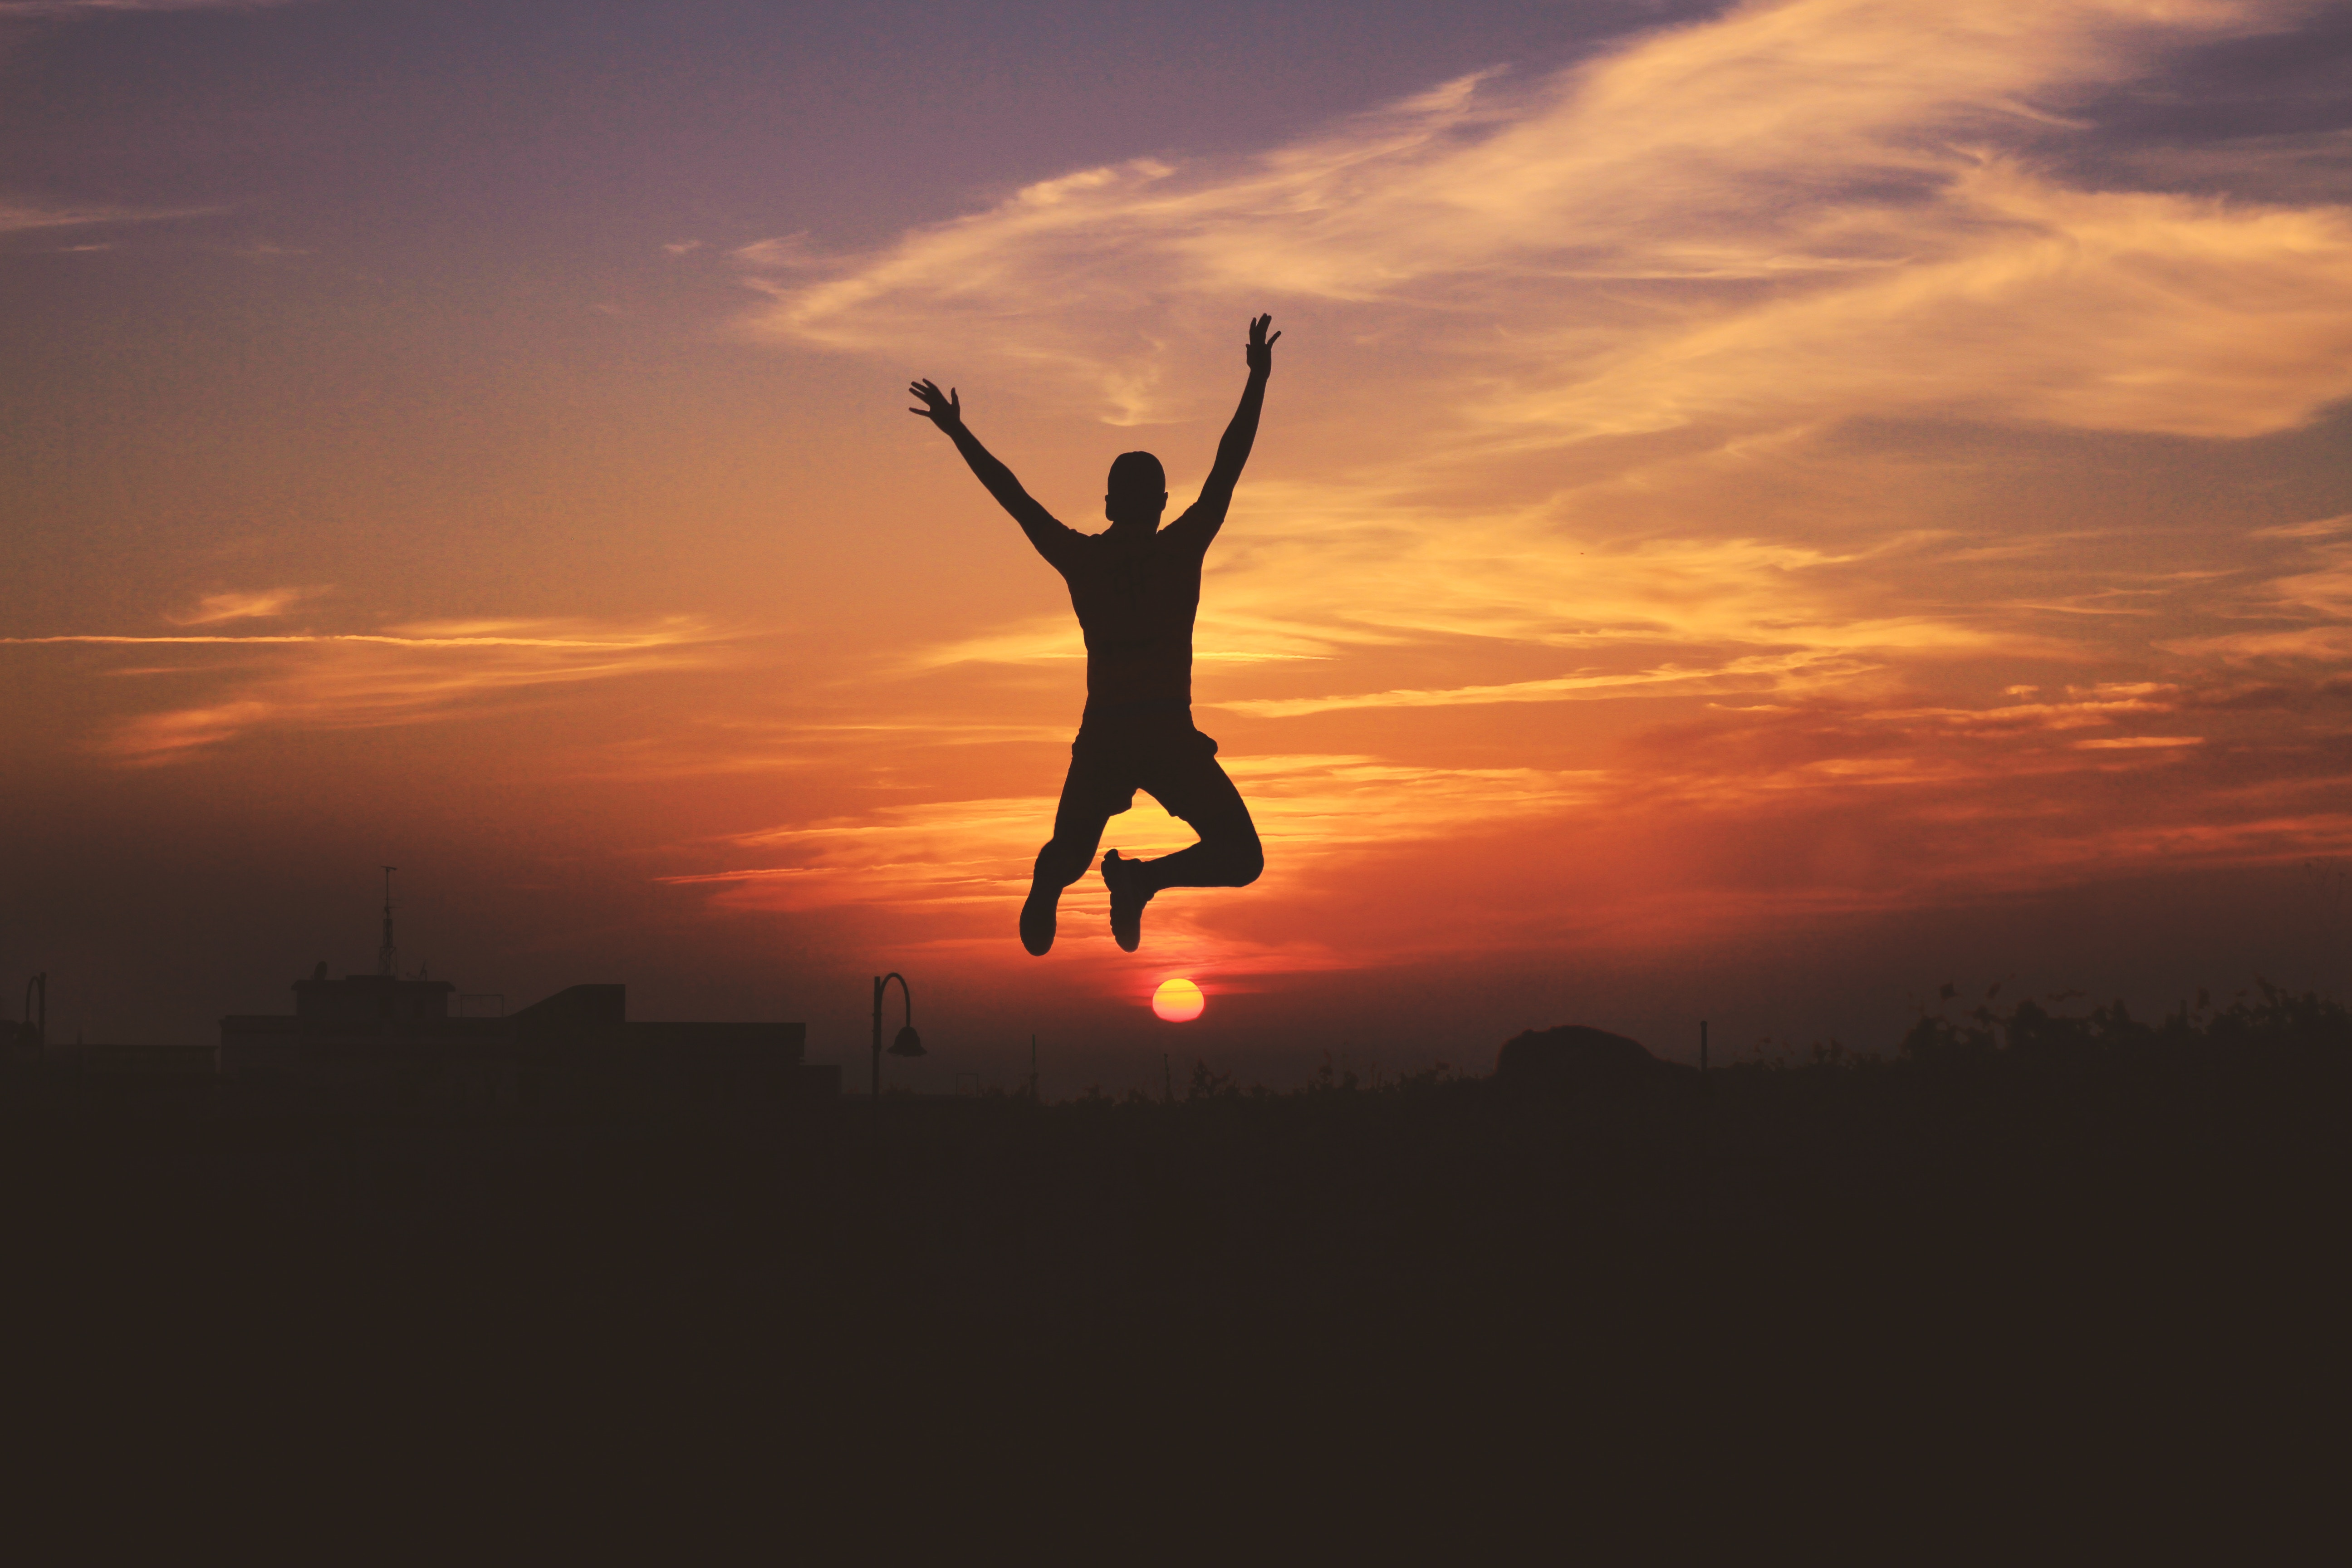 145627 Screensavers and Wallpapers Human for phone. Download Sunset, Sky, Dark, Silhouette, Human, Person, Bounce, Jump pictures for free